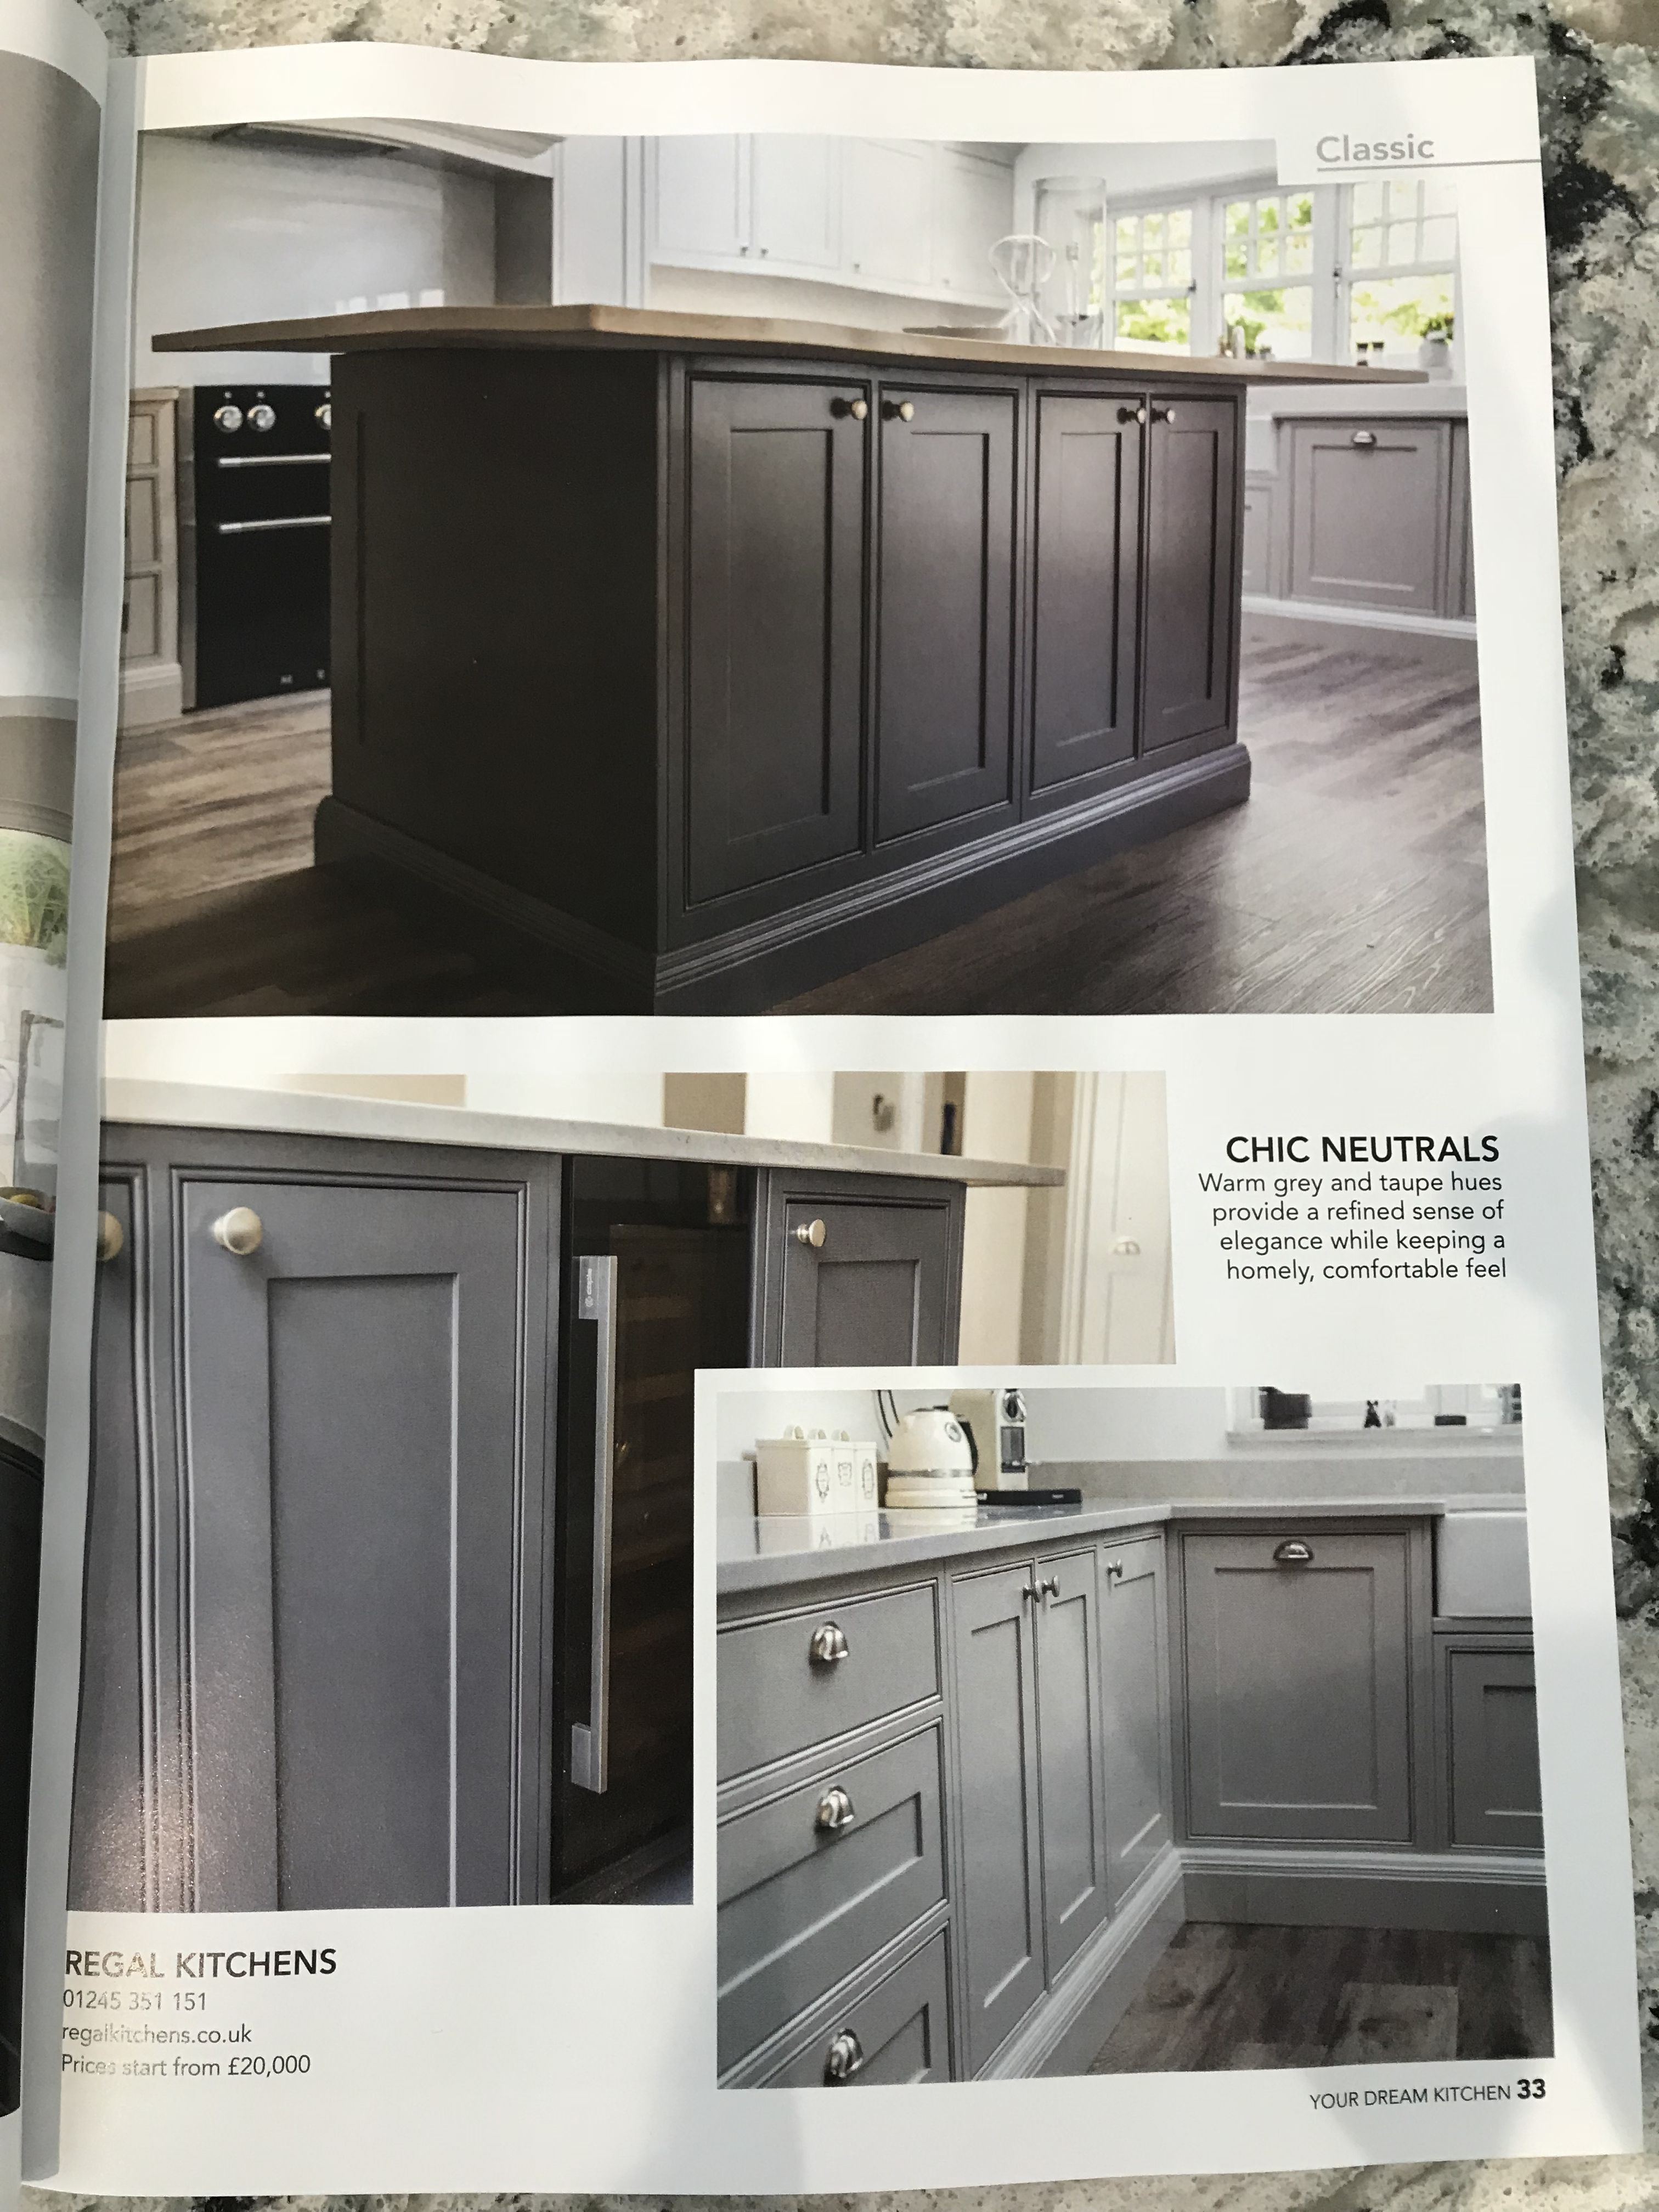 Kitchen Magazines Solid Wood Toy Very Pleased With Our Feature Piece In Your Dream November Issue